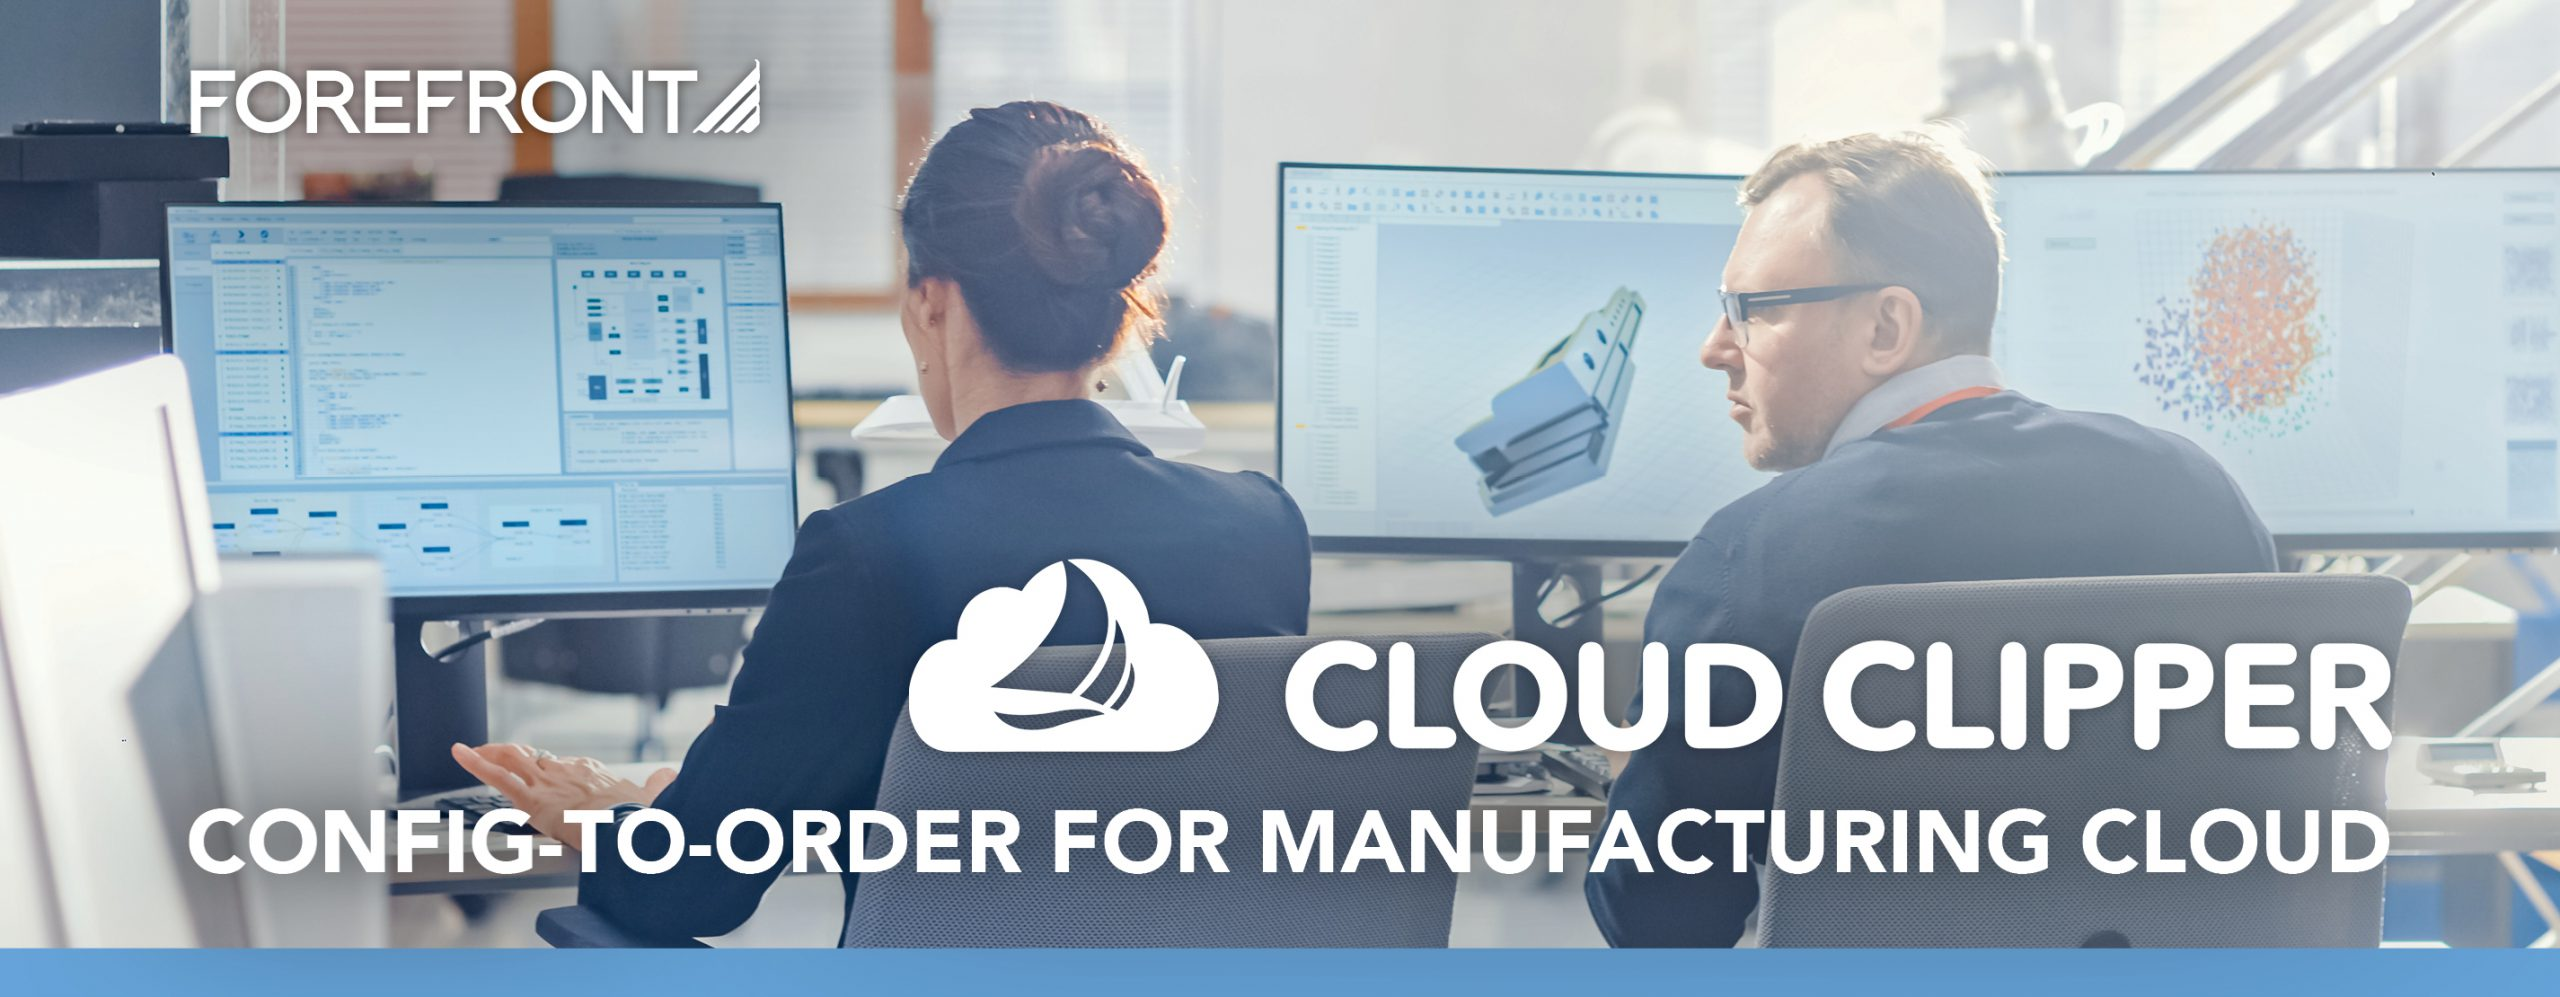 Cloud Clipper: Config-to-Order for Manufacturing Cloud